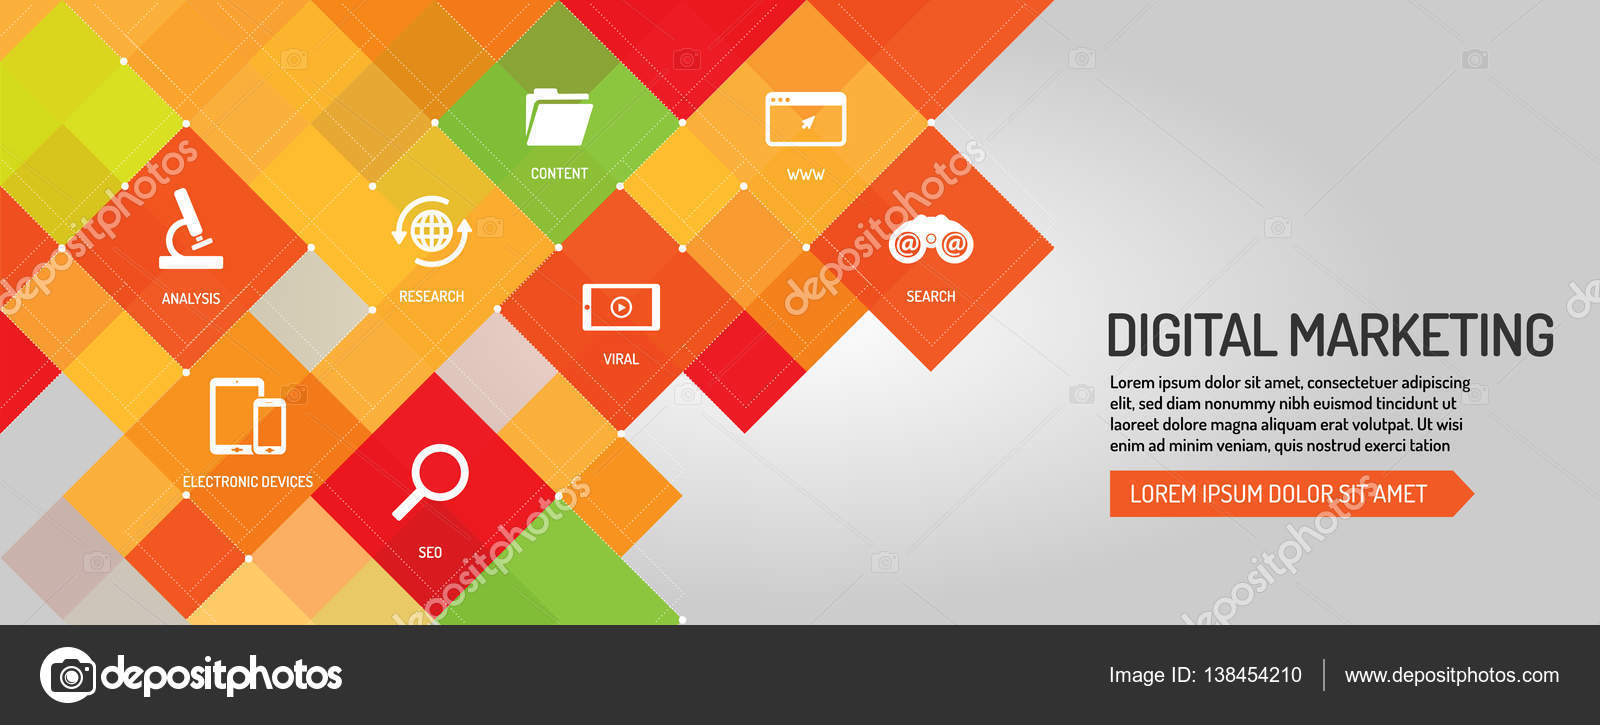 Flat Line Design Of Banner Template With Outline Icons Marketing Promotion Digital